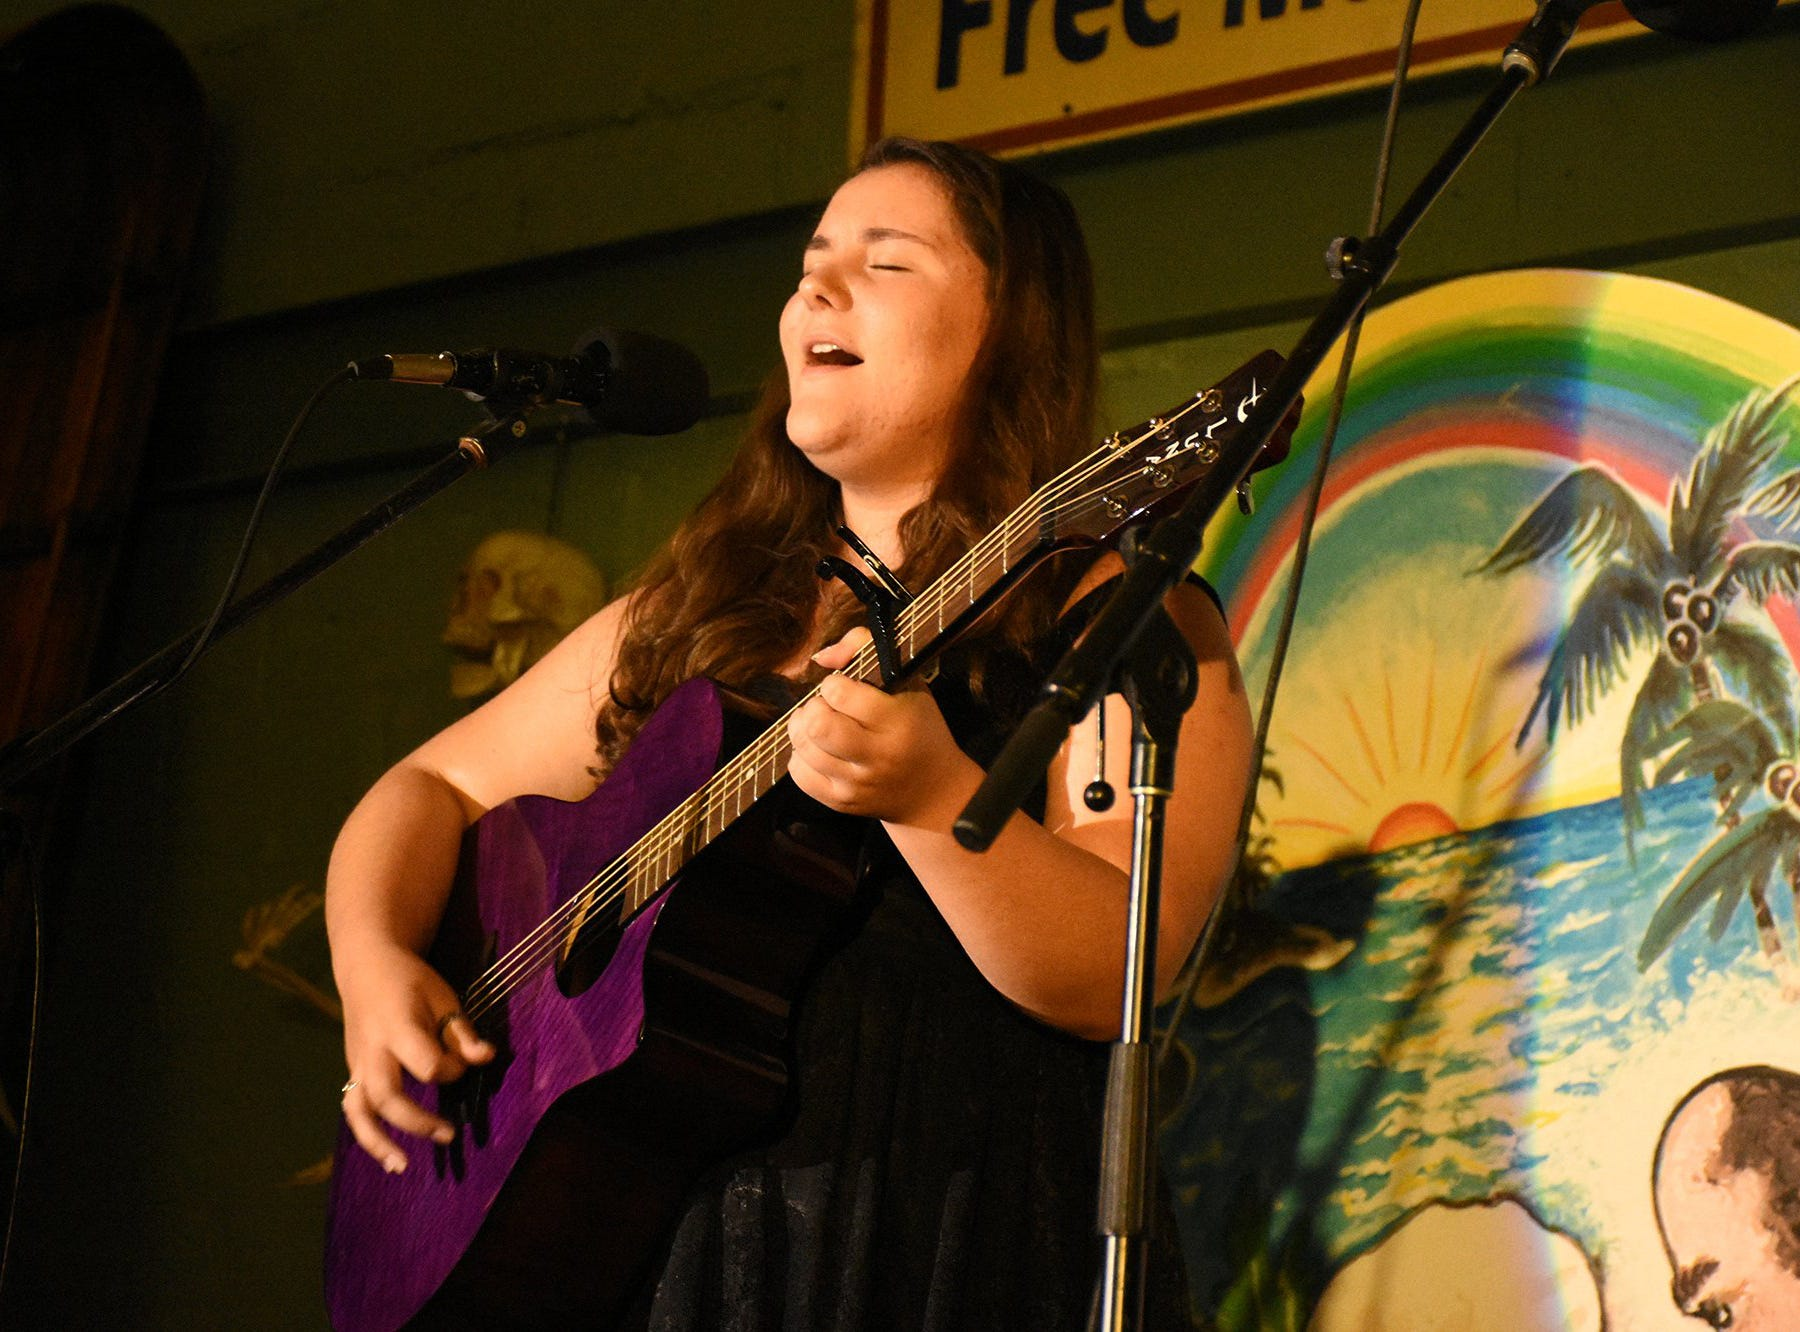 Charlie Pace sings one of her original compositions. J. Robert's Florida Songwriter Showcase brought original Sunshine State music to the Margood Harbor Park stage in Goodland on Friday evening.